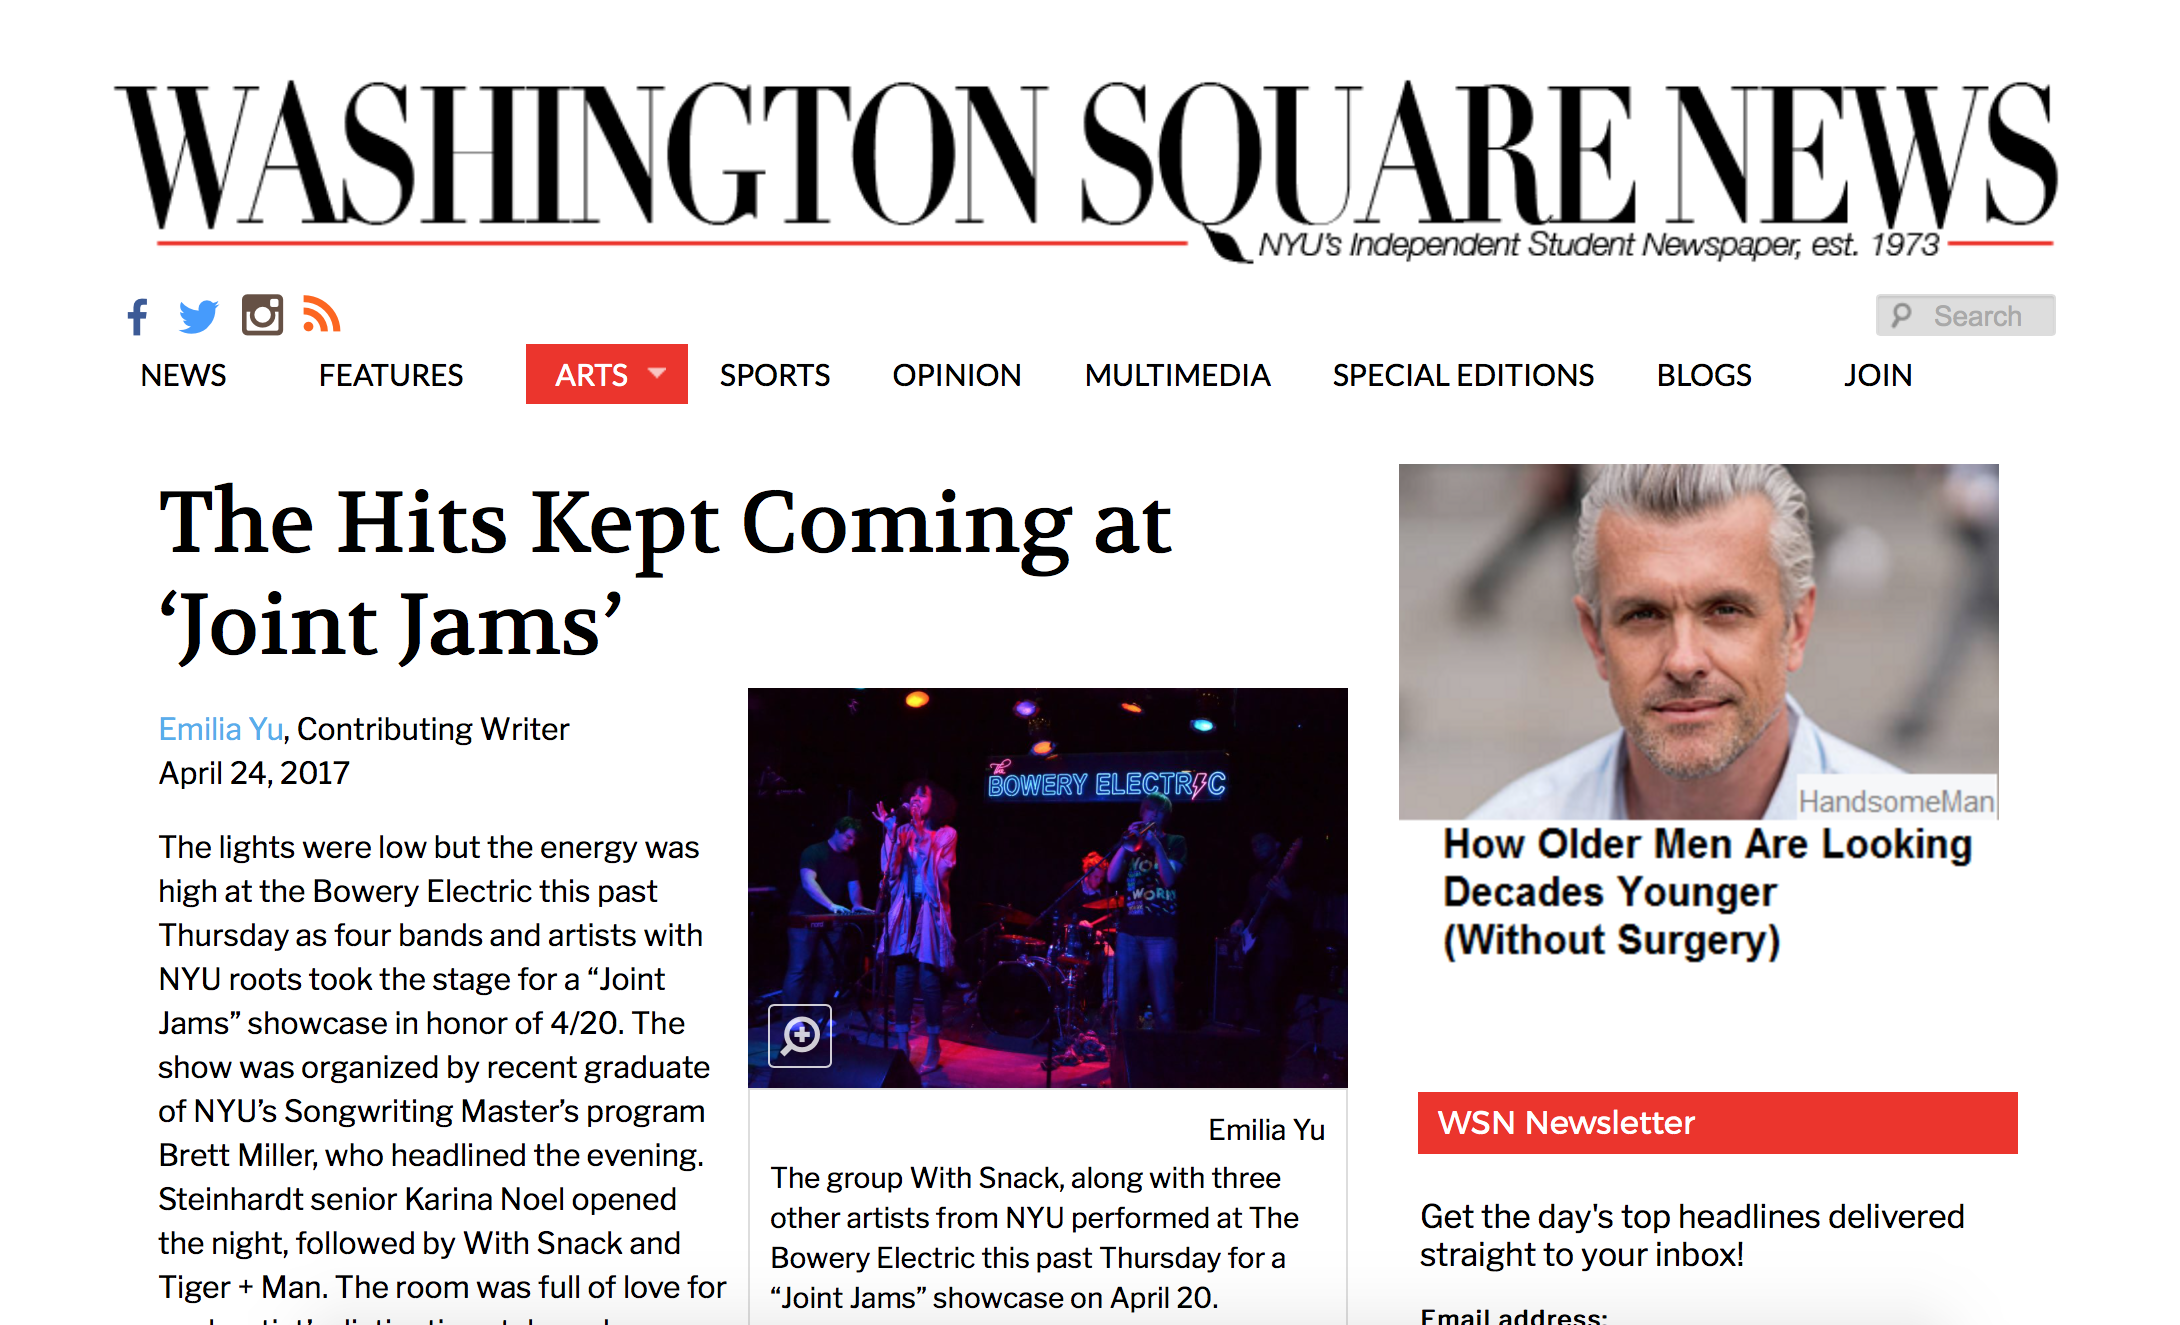 https://www.nyunews.com/2017/04/24/the-hits-kept-coming-at-joint-jams/